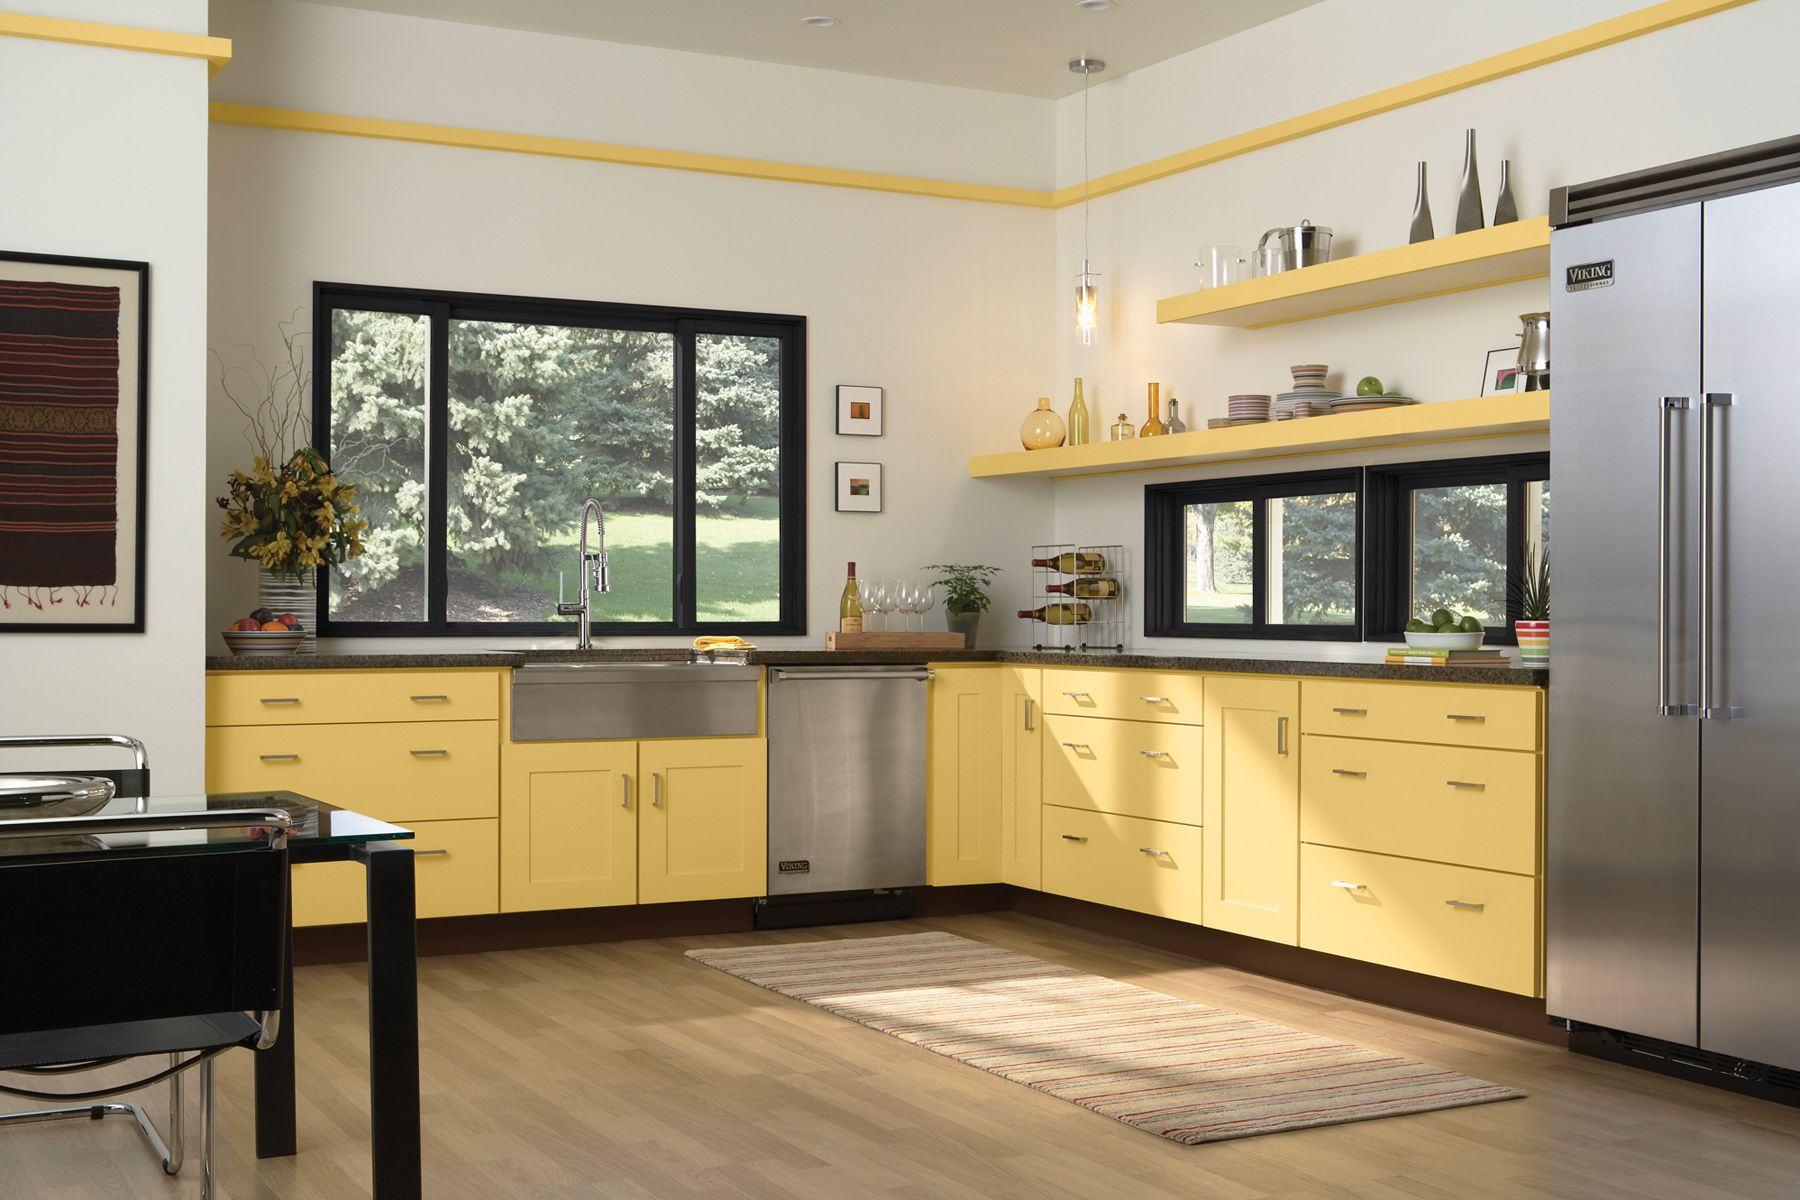 mastercraft kitchen cabinets Denver | ... mastercraft ...